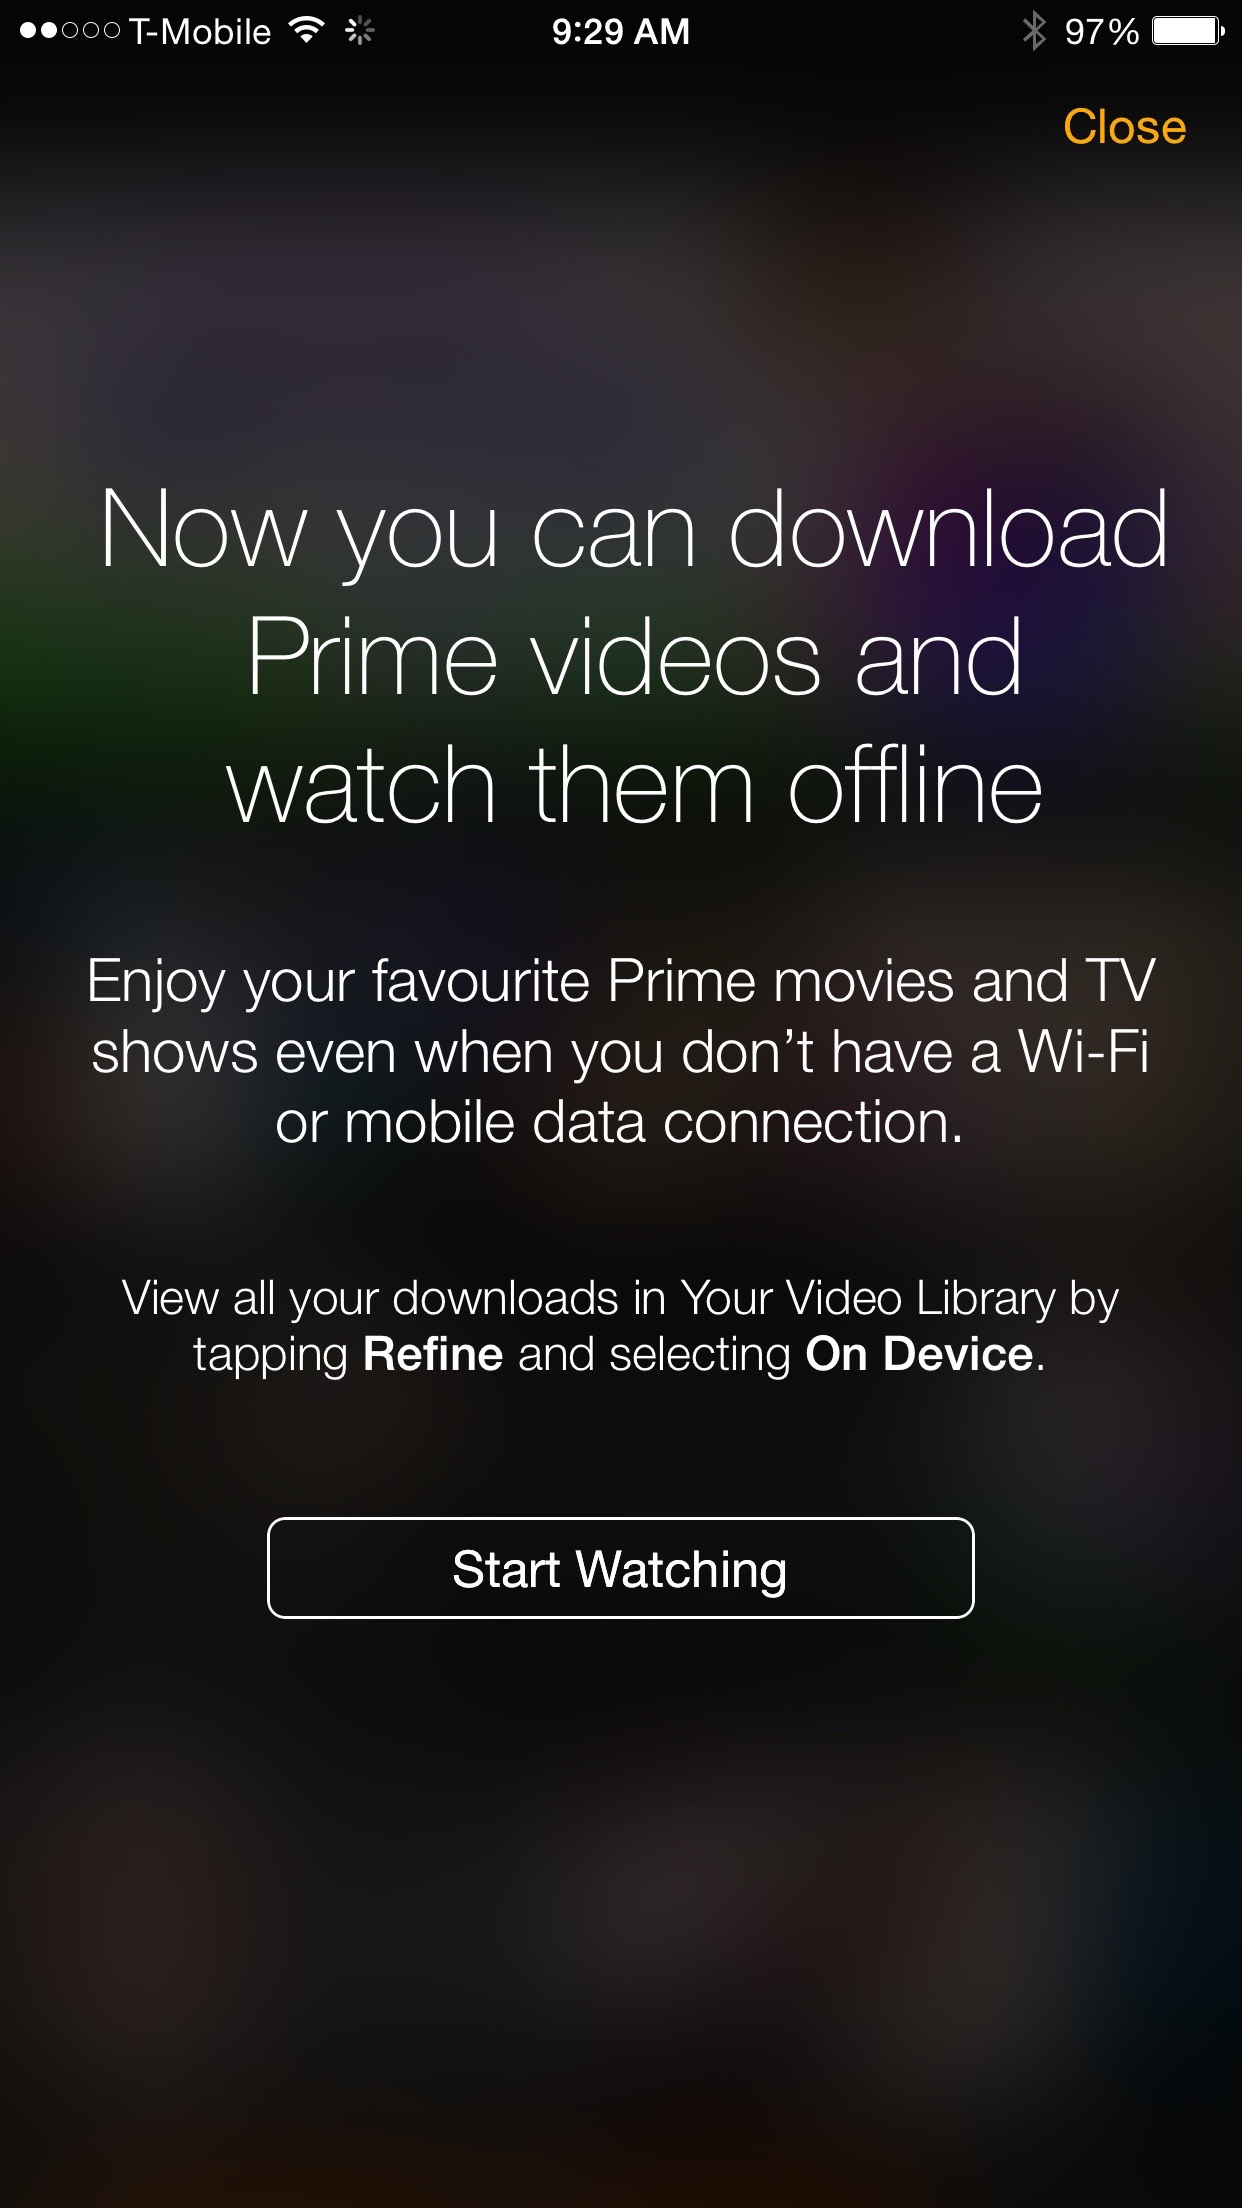 Amazon Video app updated to allow offline playback for Prime